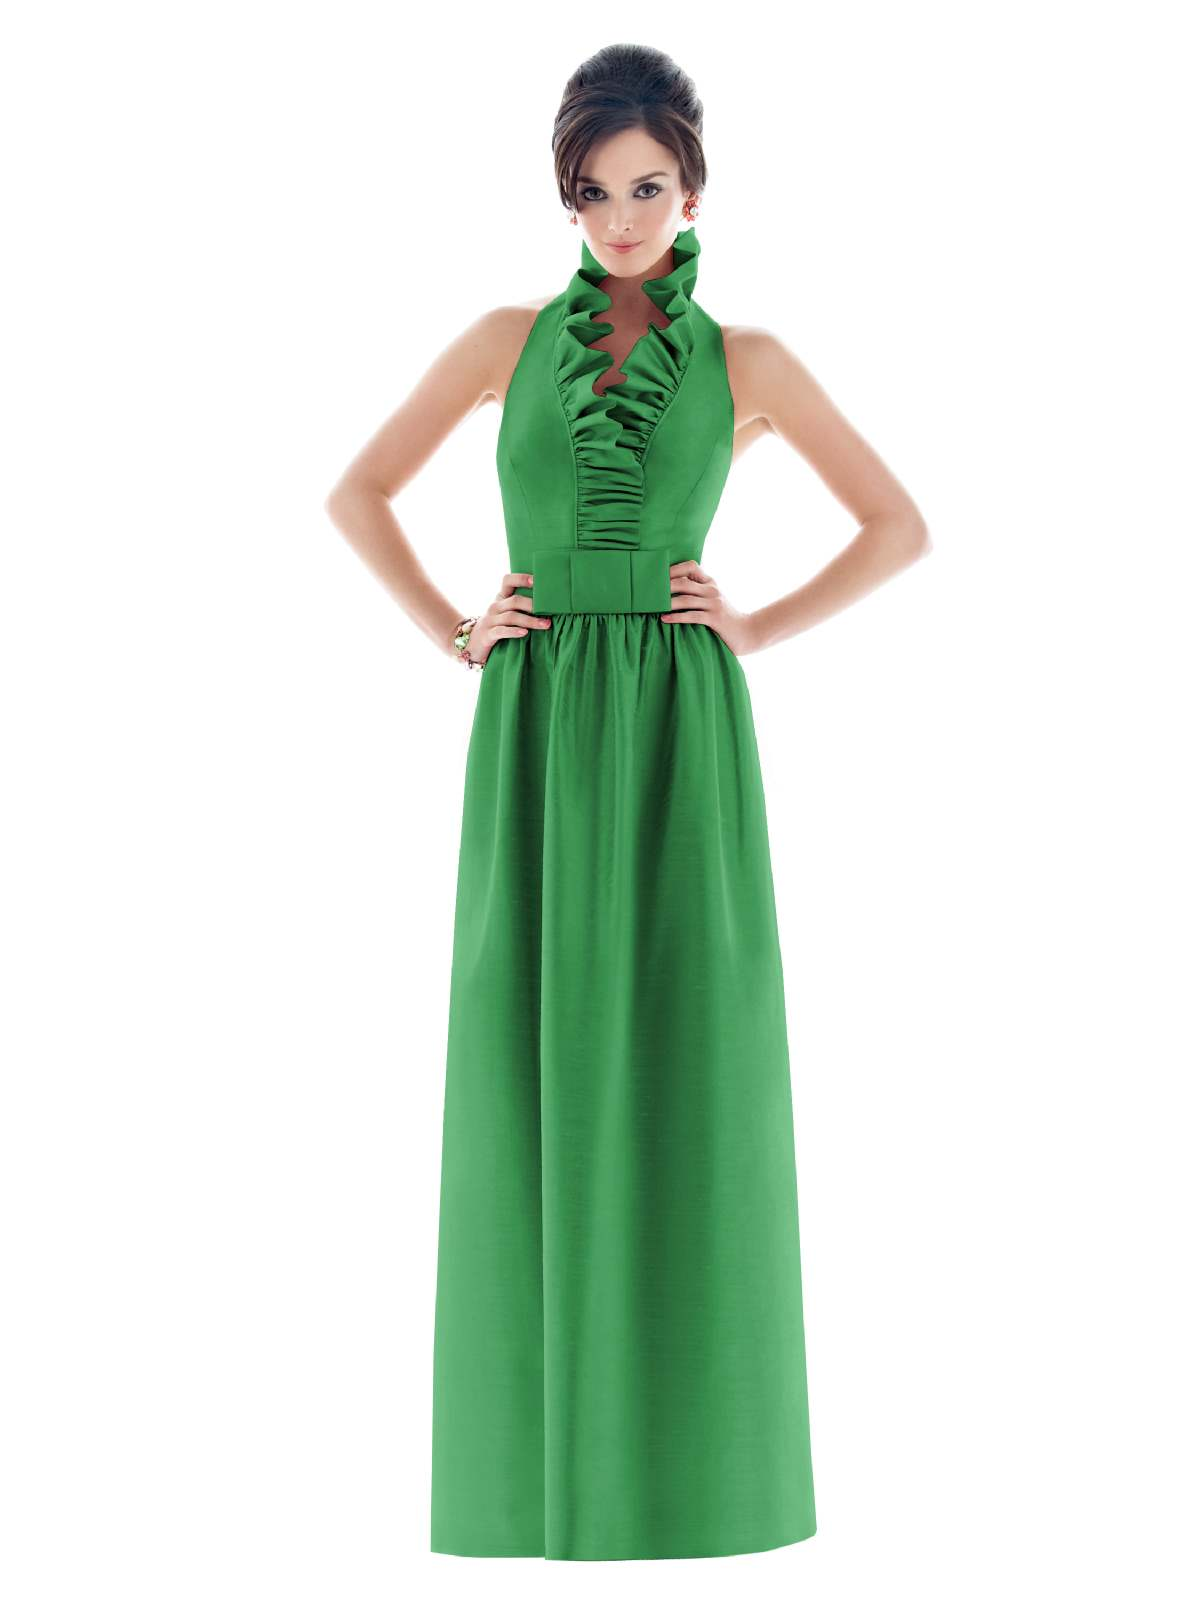 Green A Line Flounced Halter Low Back Floor Length Prom Dresses With Belt